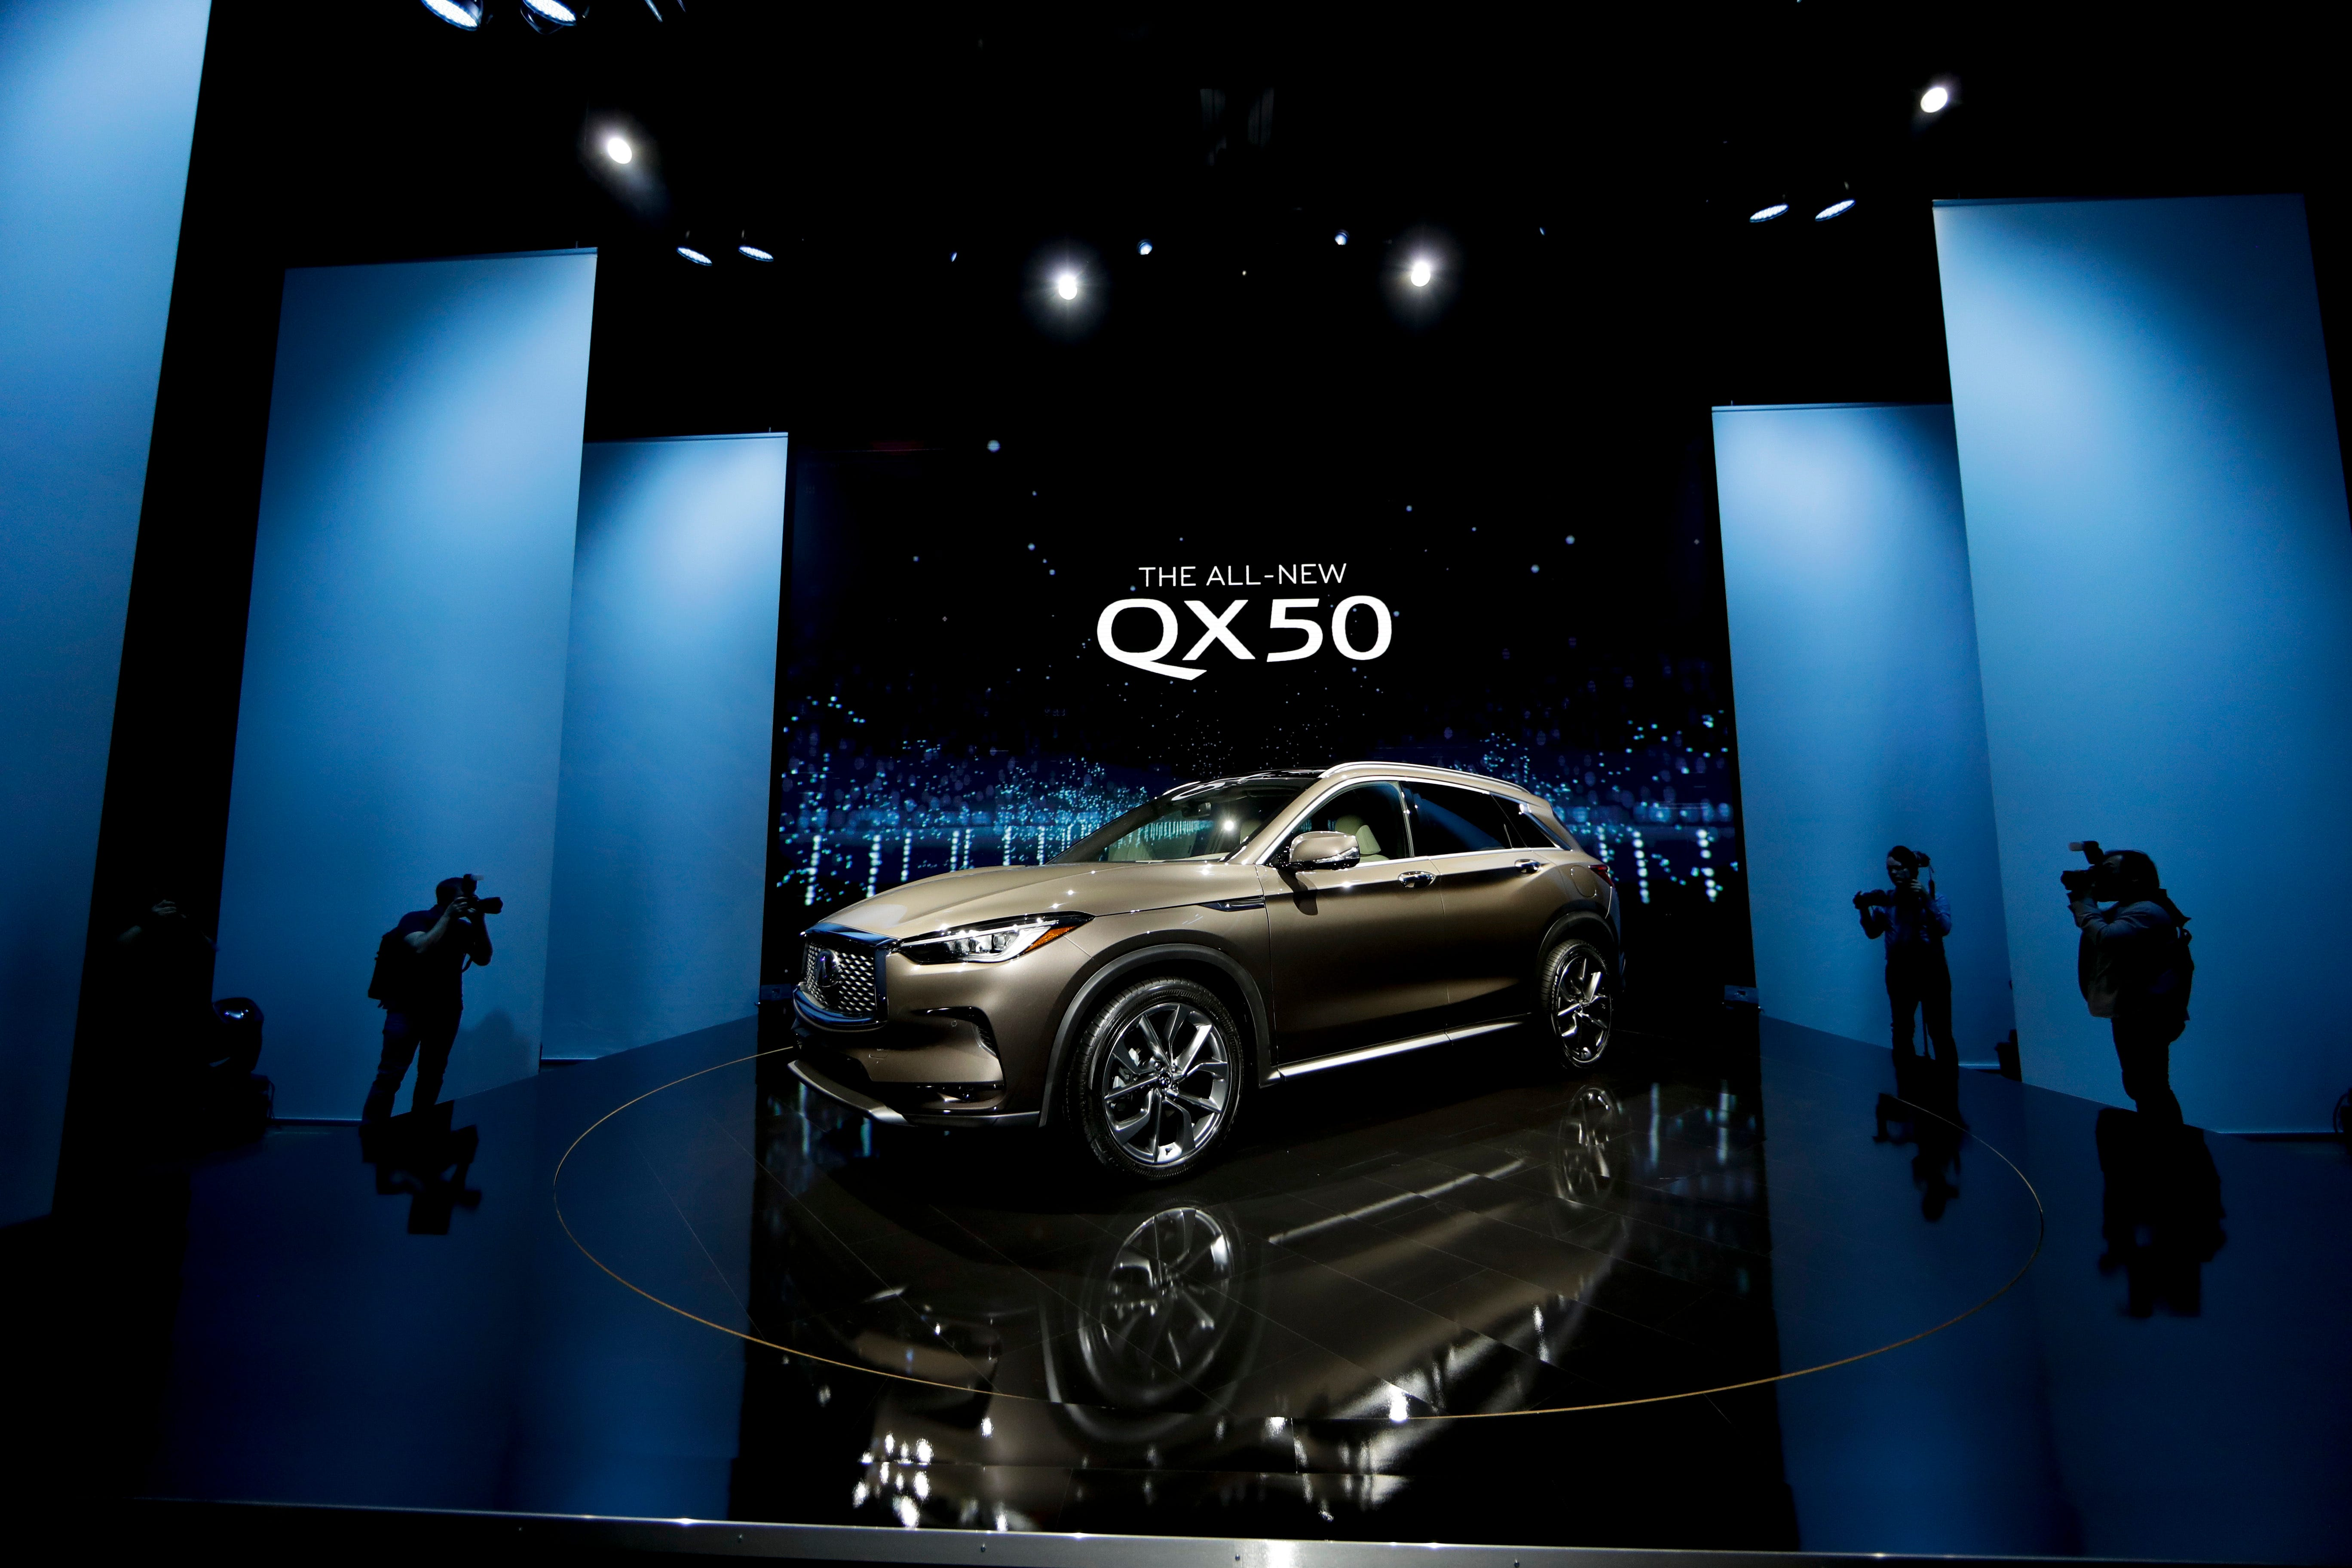 The 2018 Infiniti QX50 is revealed as part of the AutoMobility